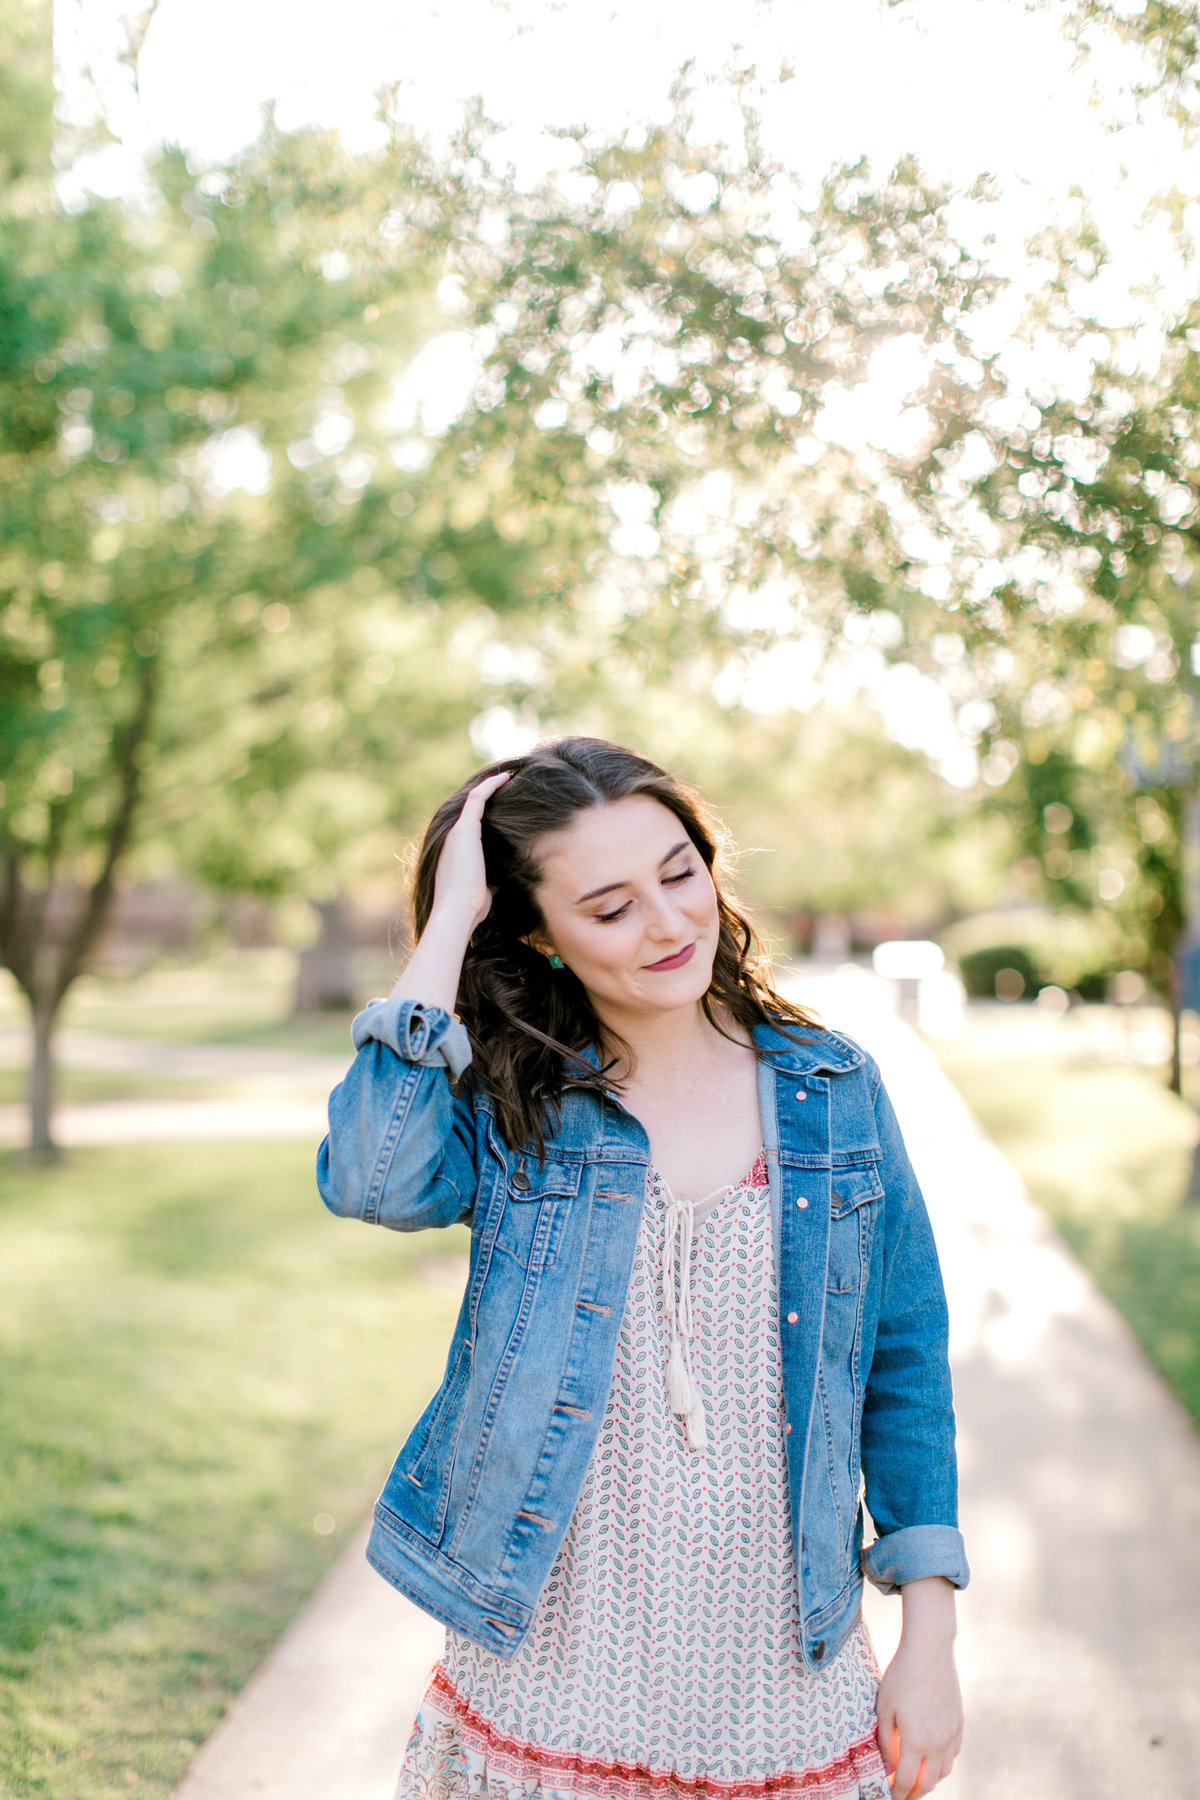 Melanie Foster Photography - Norman Oklahoma Senior and Engagement Photographer - Senior Photo - 8